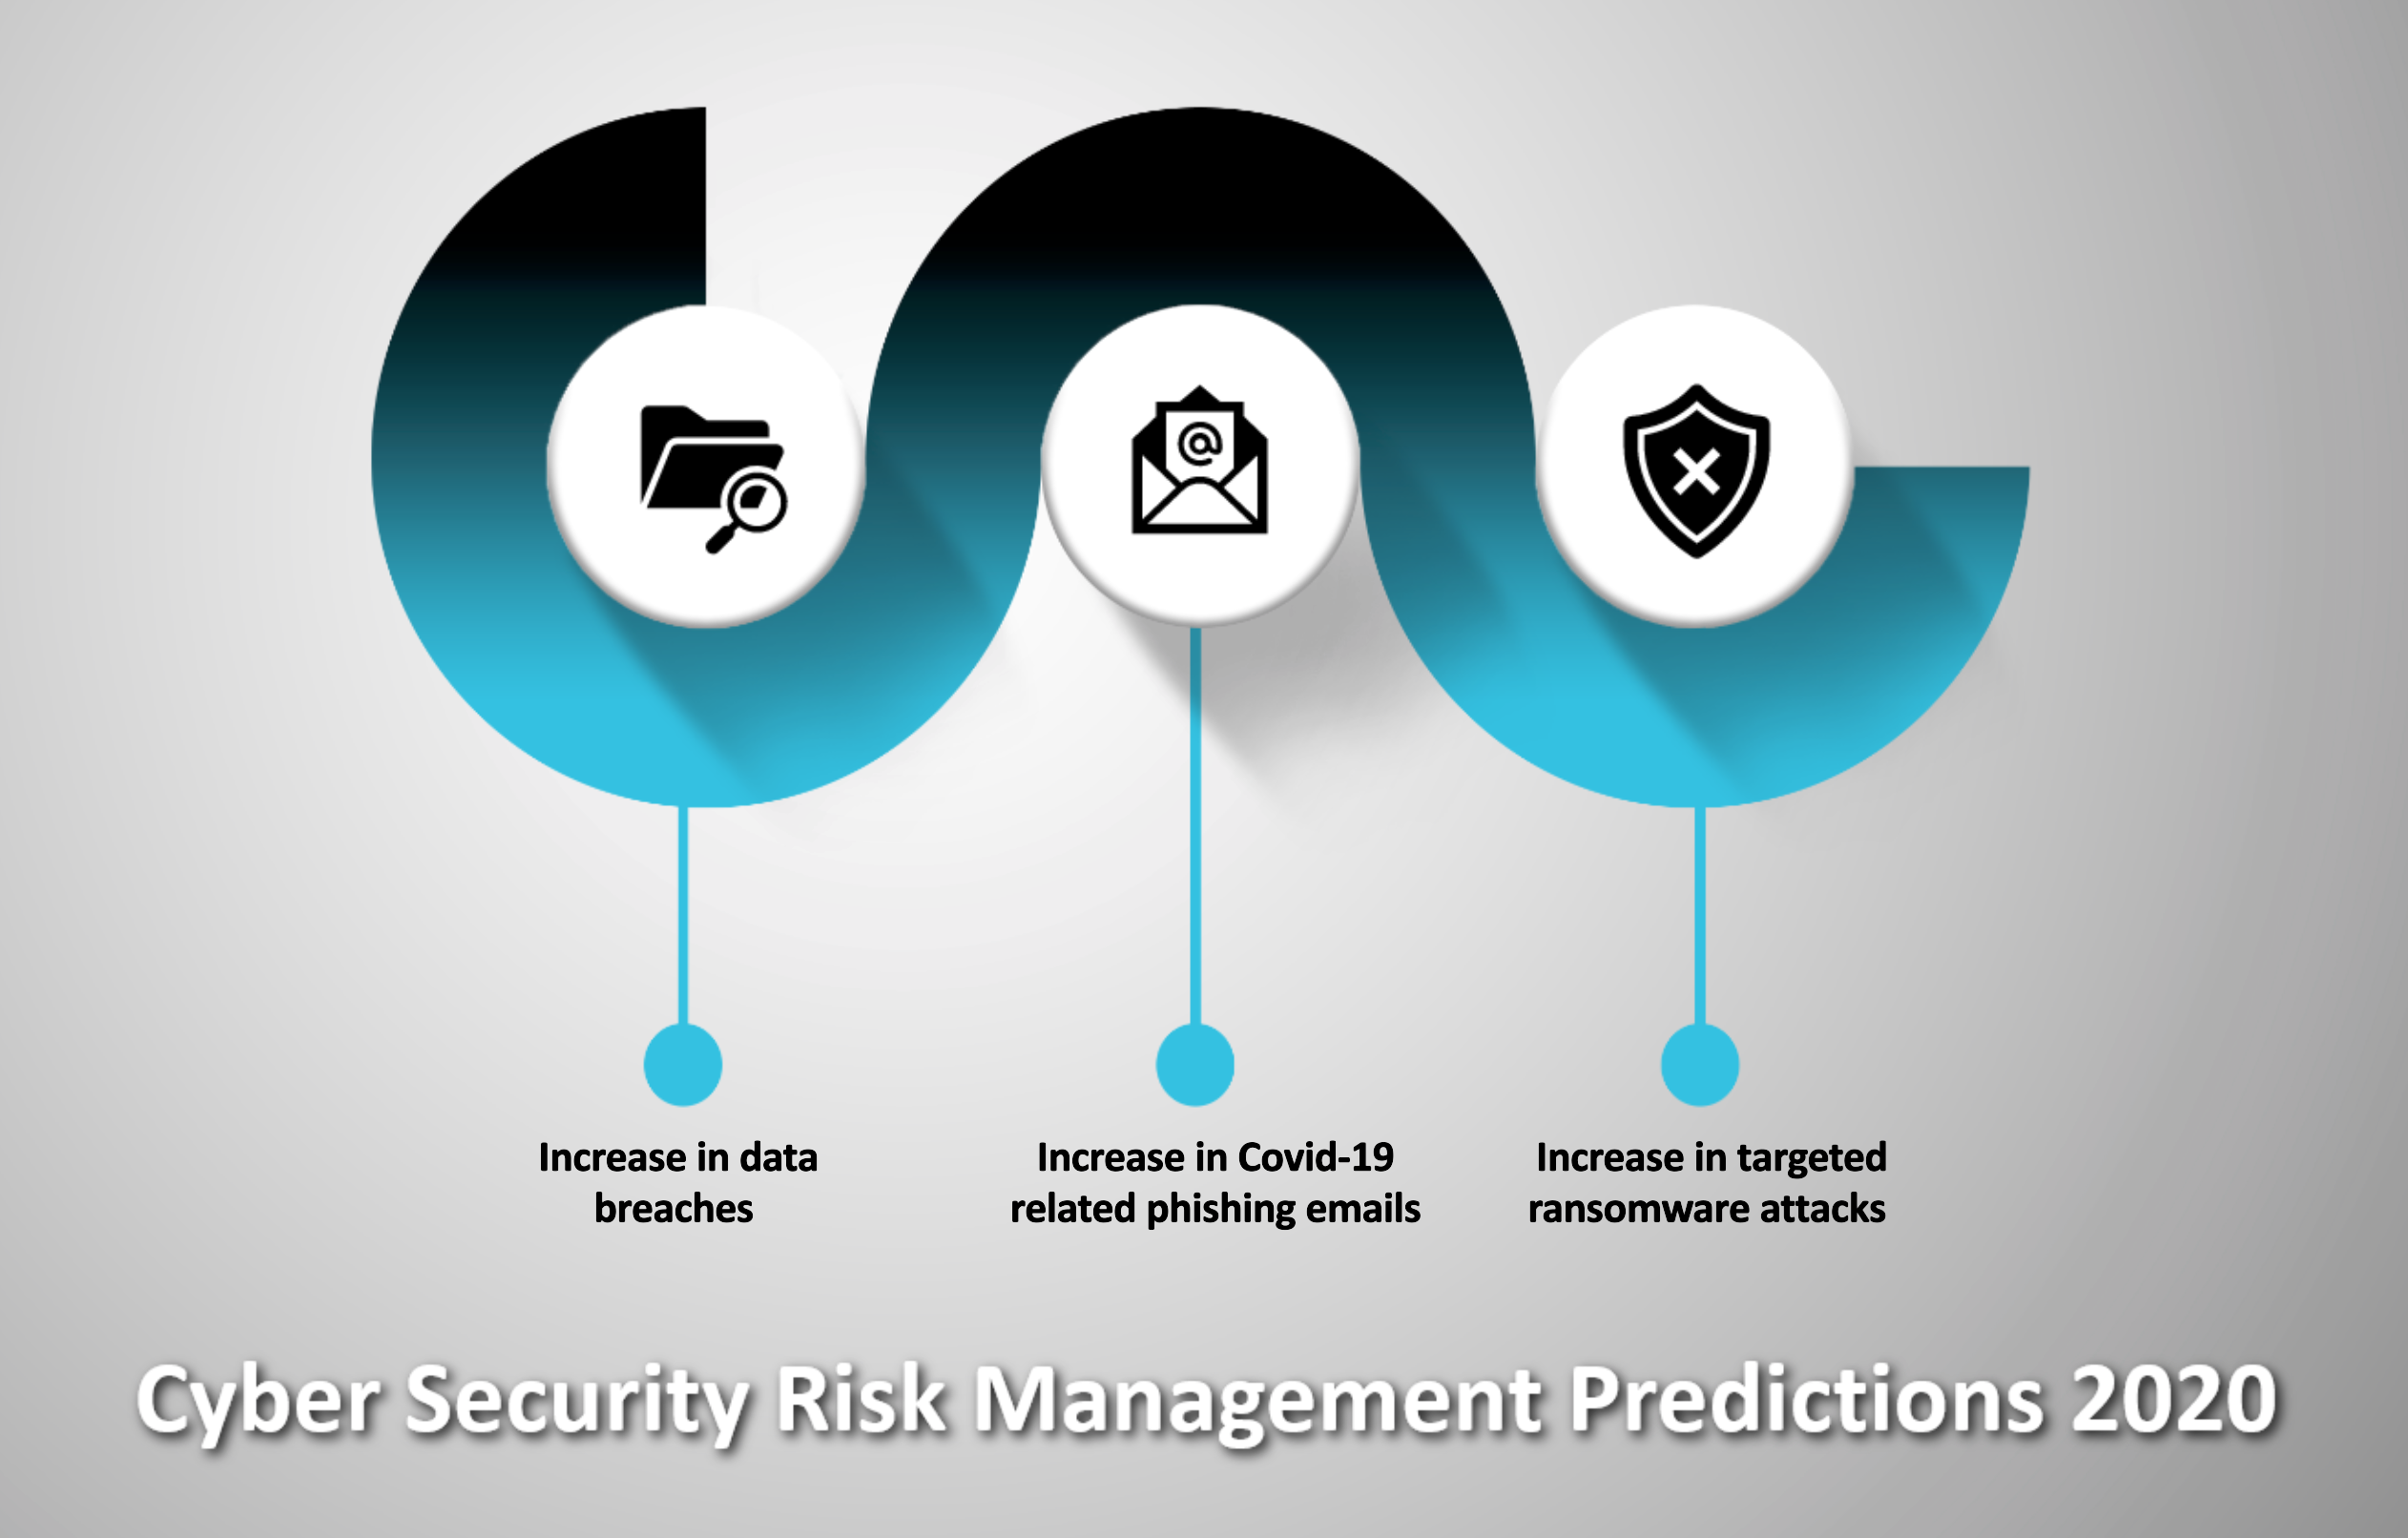 Cyber security risk management